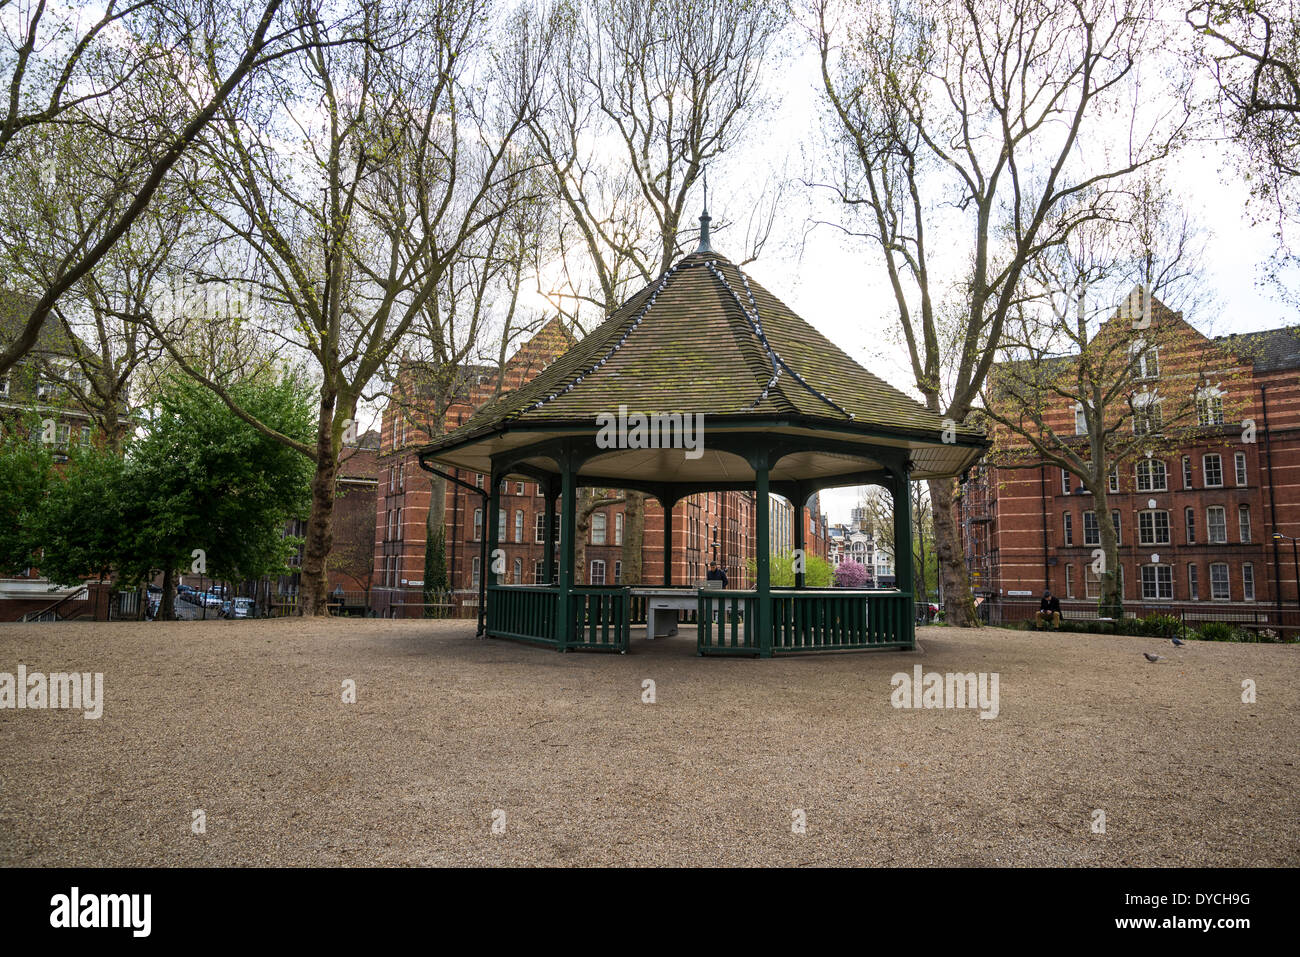 The Boundary Estate bandstand at Arnold Circus, Shoreditch, London, UK - Stock Image